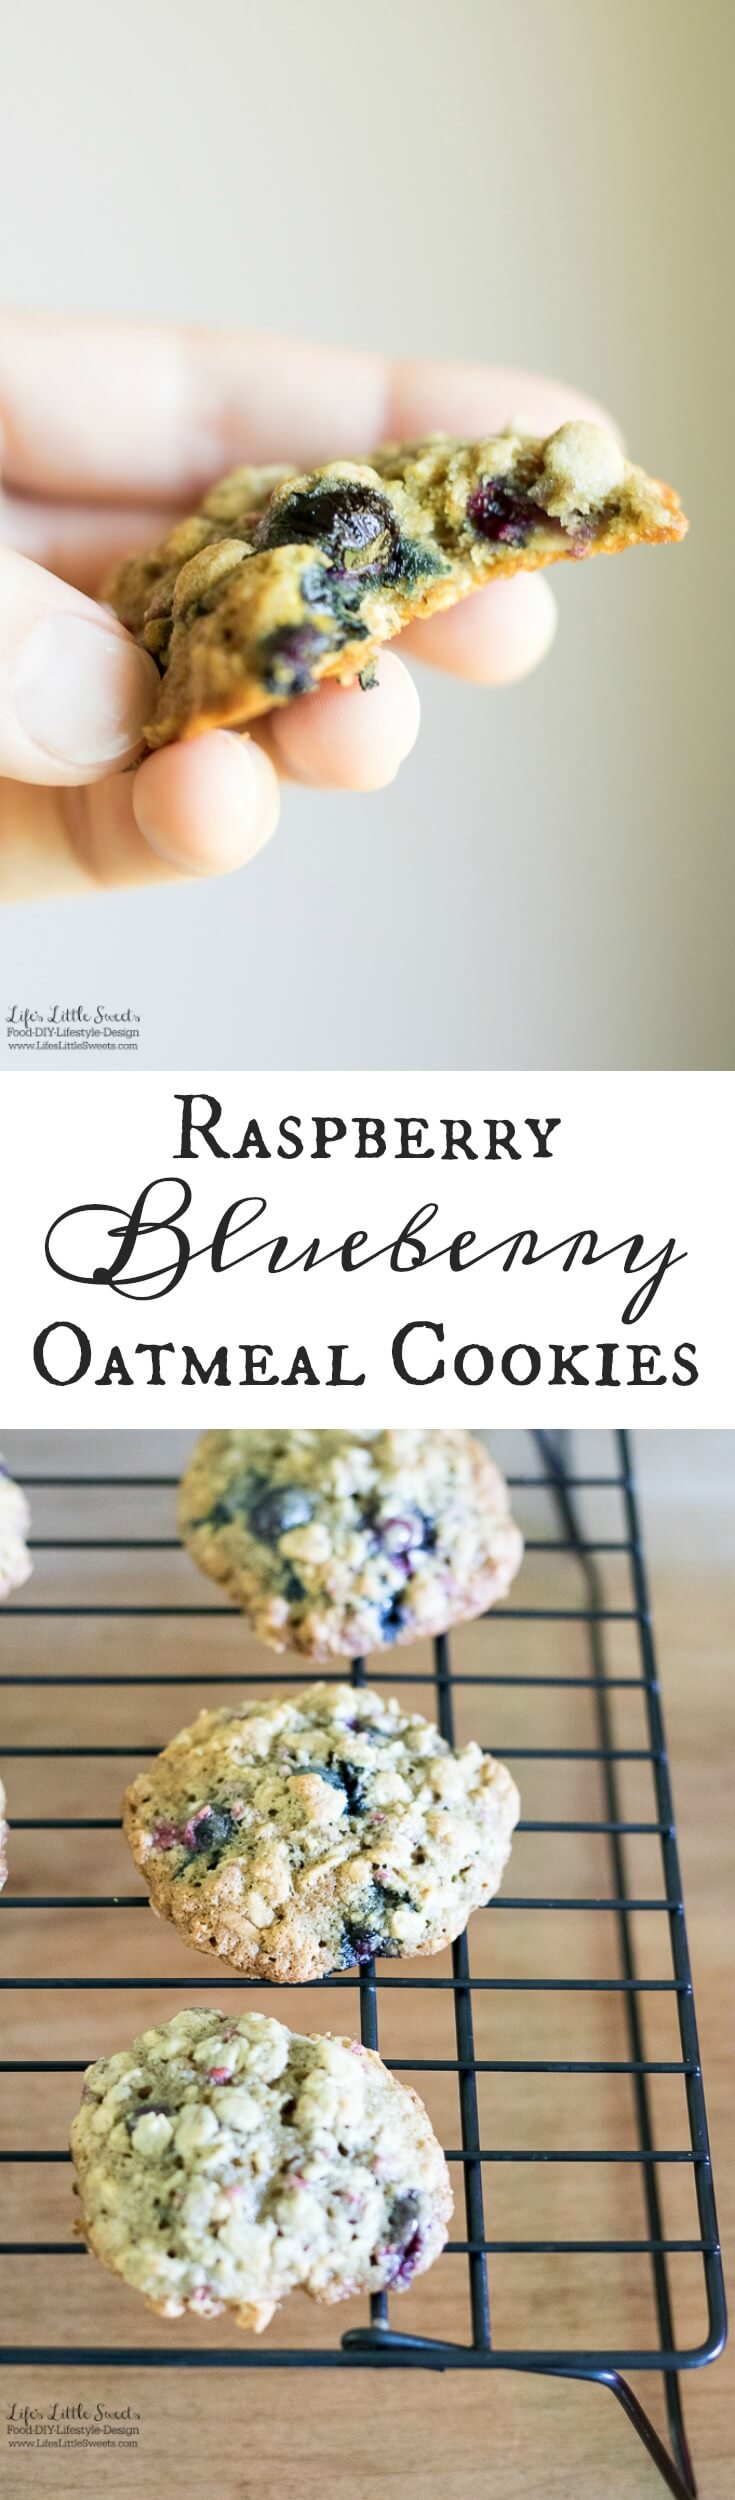 These Raspberry Blueberry Oatmeal Cookies are the perfect breakfast cookie. They incorporate your favorite seasonal berries in a delicious oatmeal cookie! (makes about 30-36 cookies) www.lifeslittlesweets.com